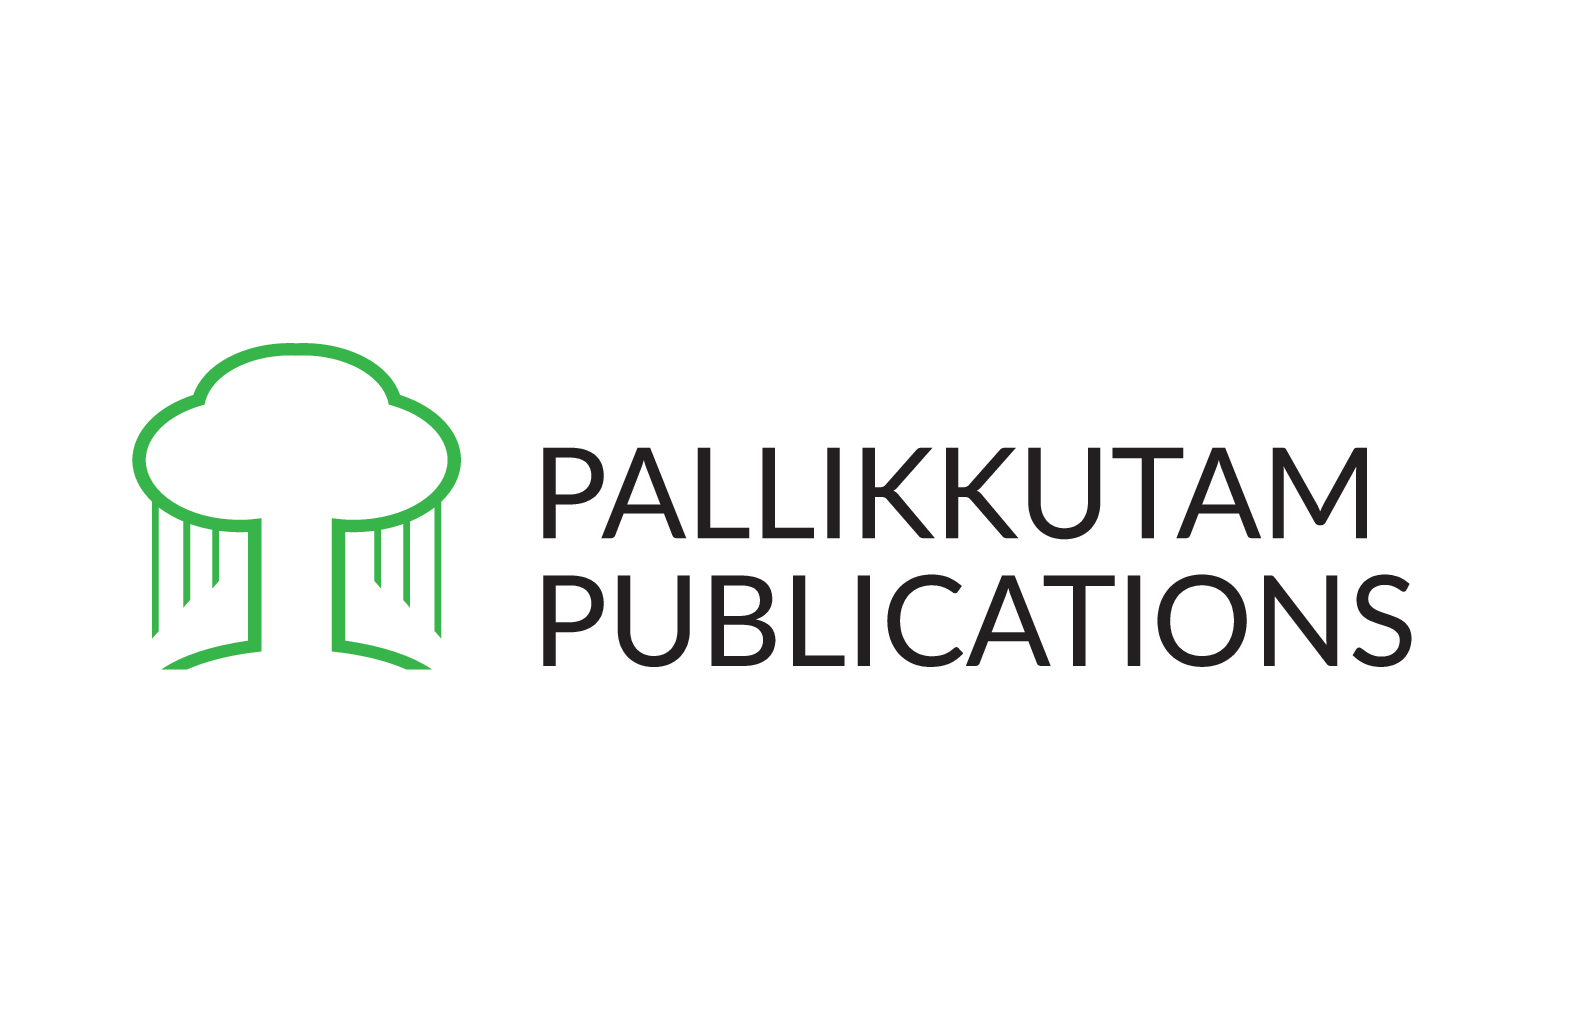 Pallikkutam Publications